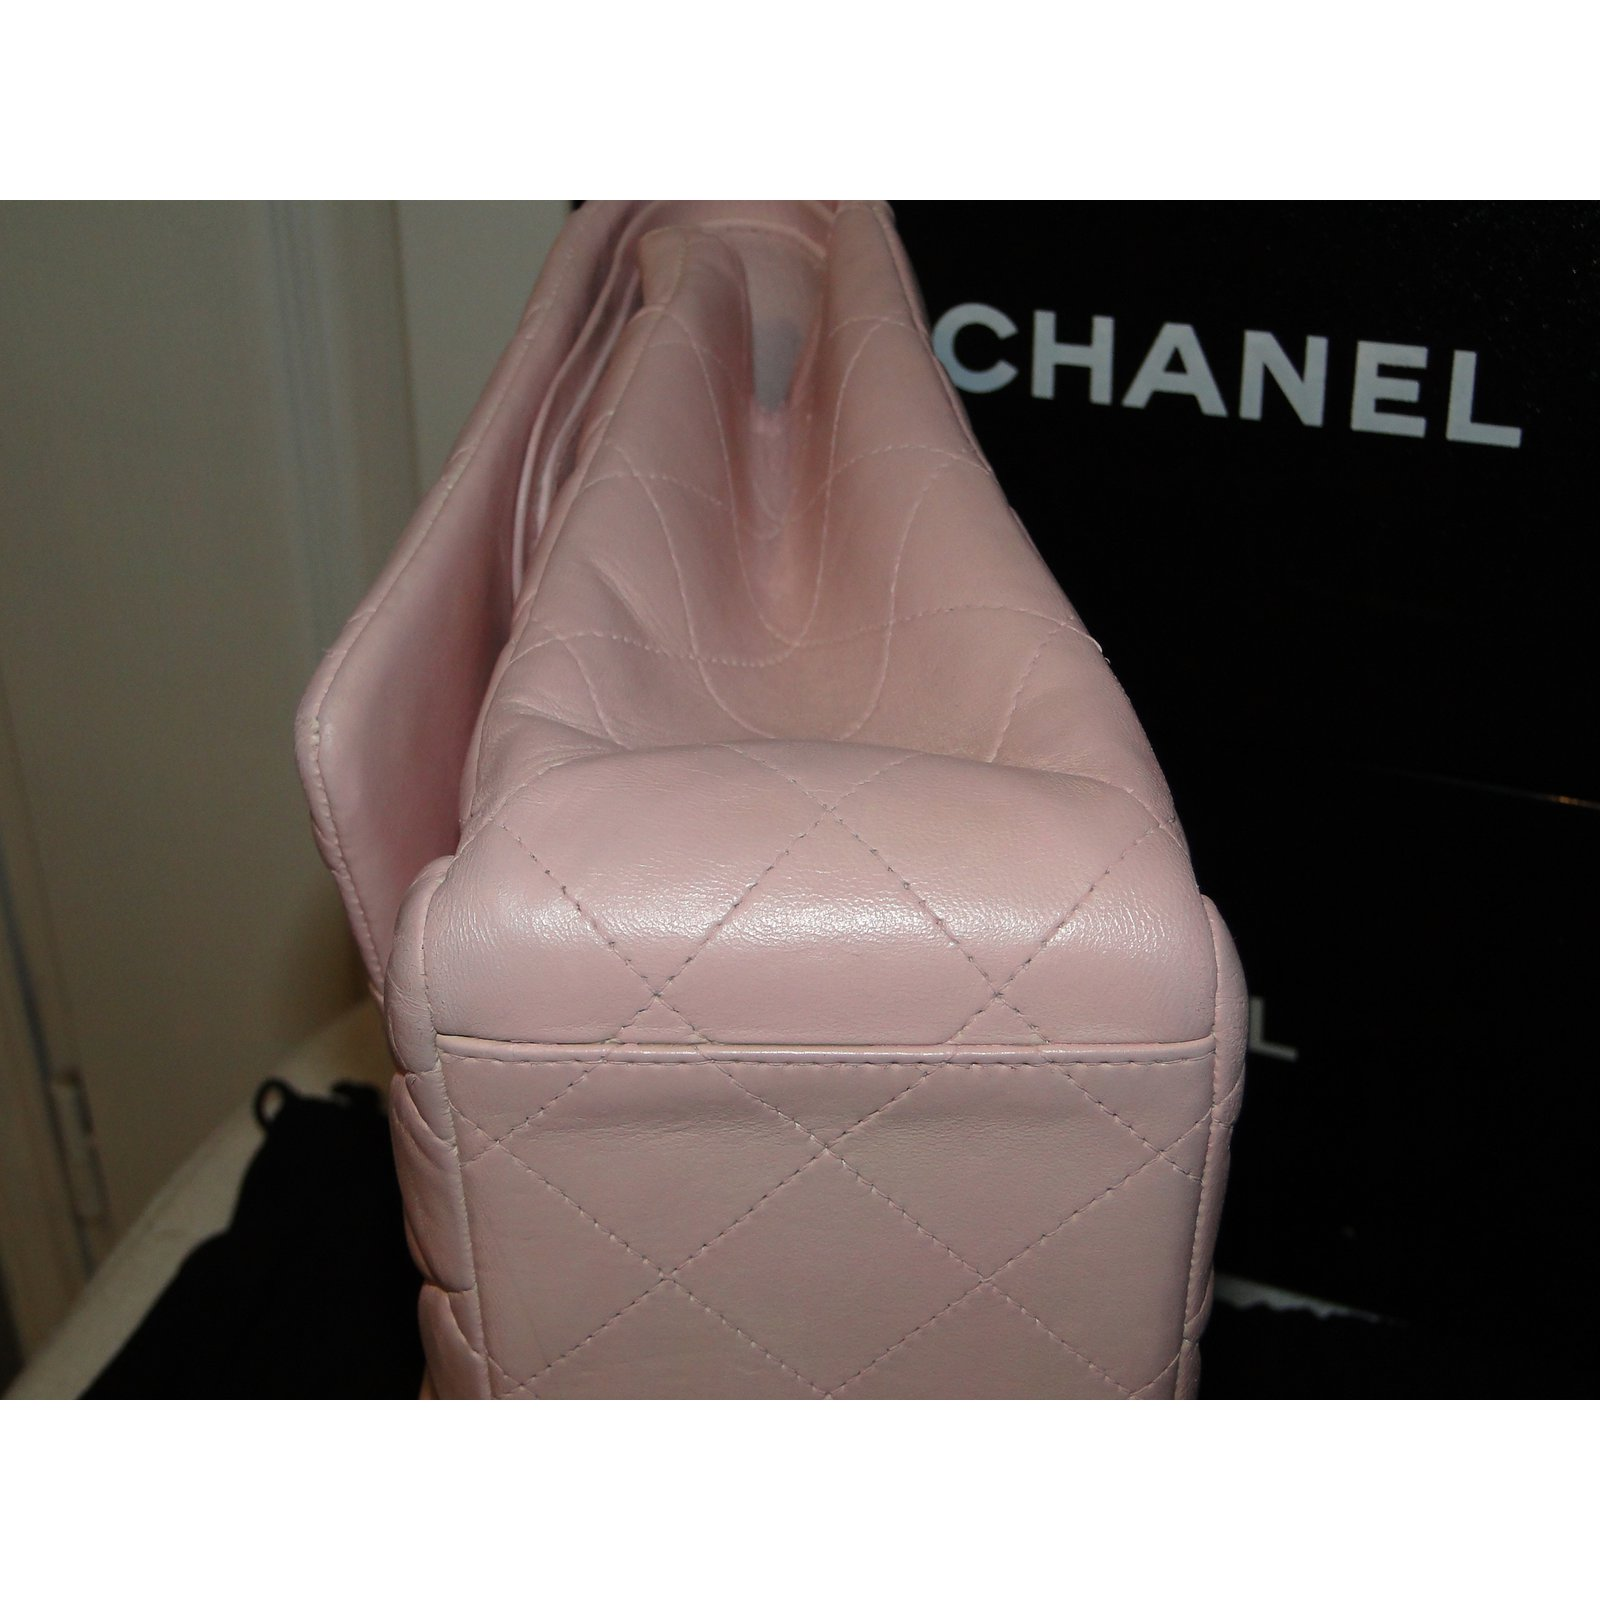 e3a9e0b29584 Chanel Timeless MAXI lined Flap bag Handbags Leather,Lambskin Pink  ref.109293 - Joli Closet